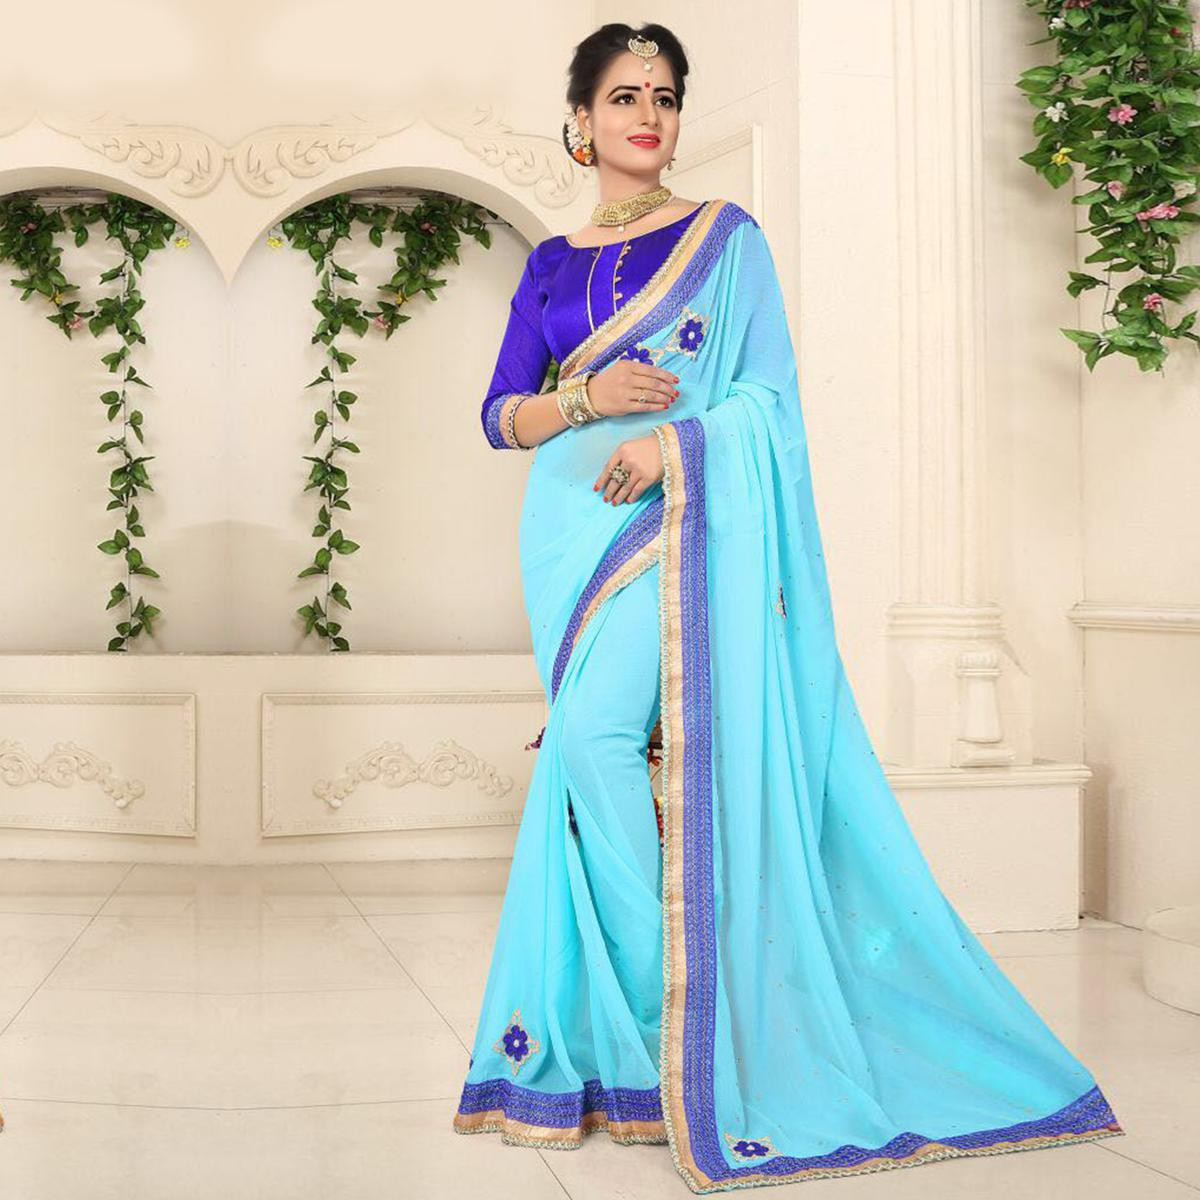 6d8d7f0a47 Buy Dazzling Blue Georgette Partywear Saree online India, Best Prices,  Reviews - Peachmode